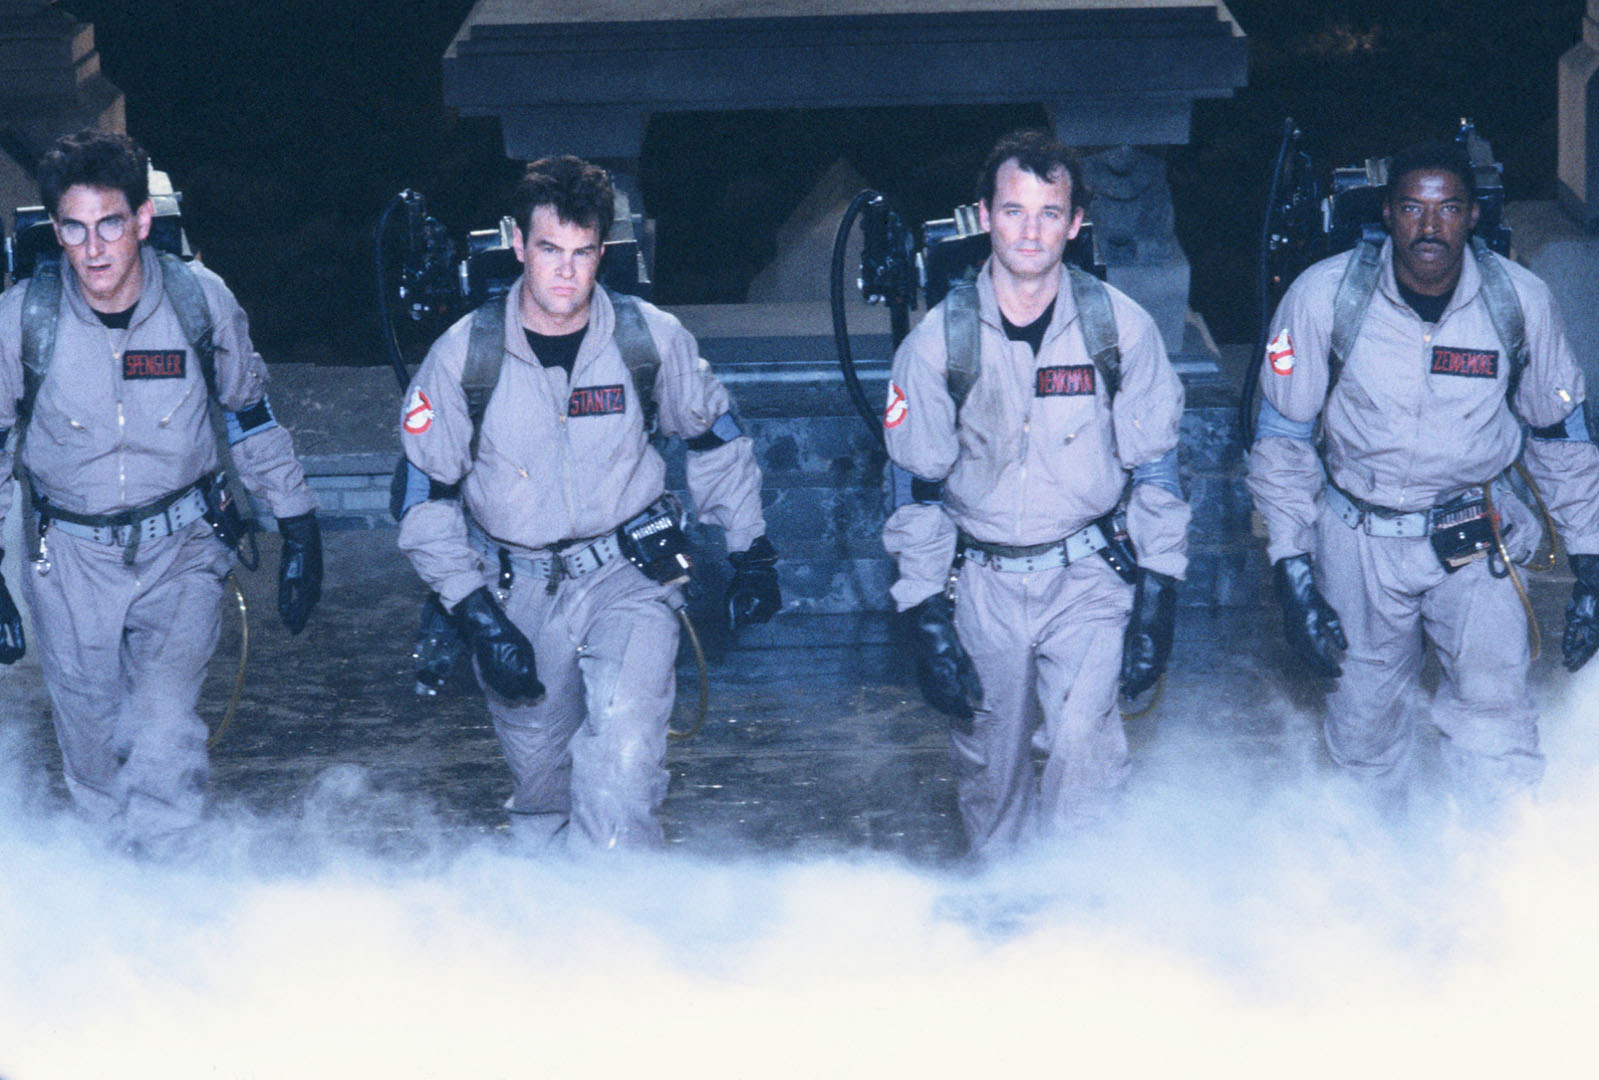 Original 'Ghostbusters' will appear with the new cast on Kimmel next week –  BGR